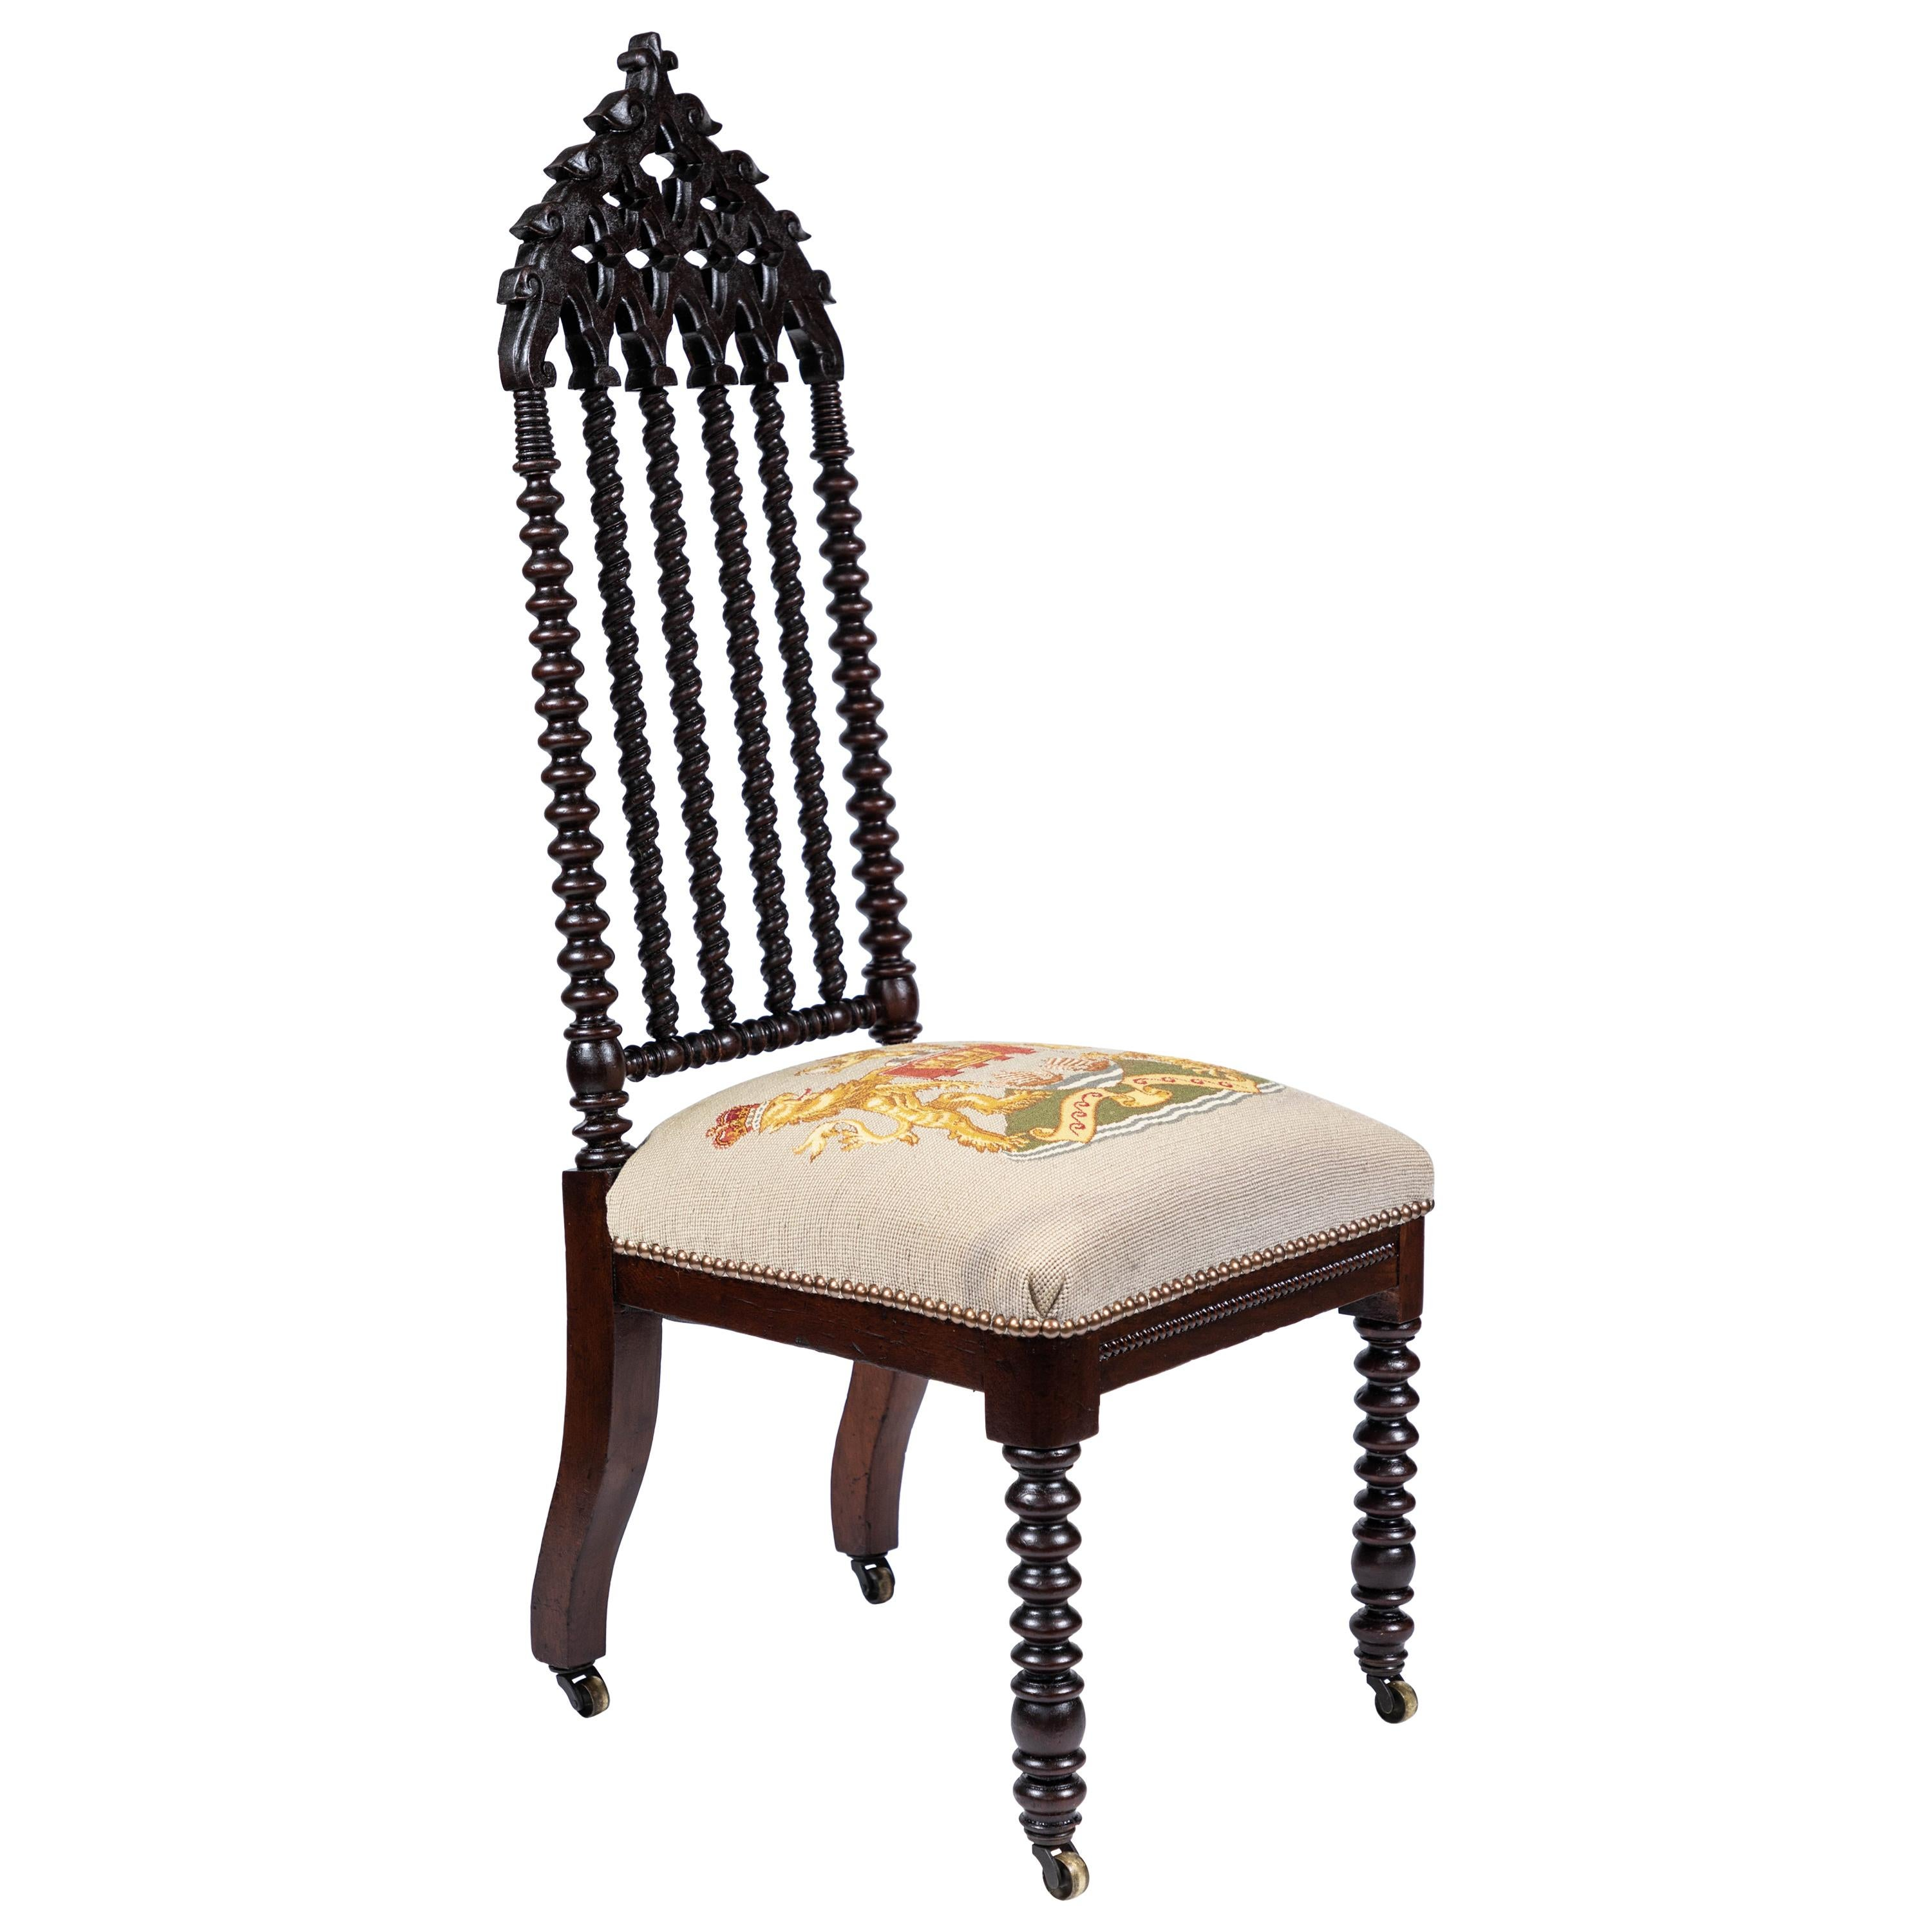 Antique 19th Century Gothic Revival Style Chair For Sale